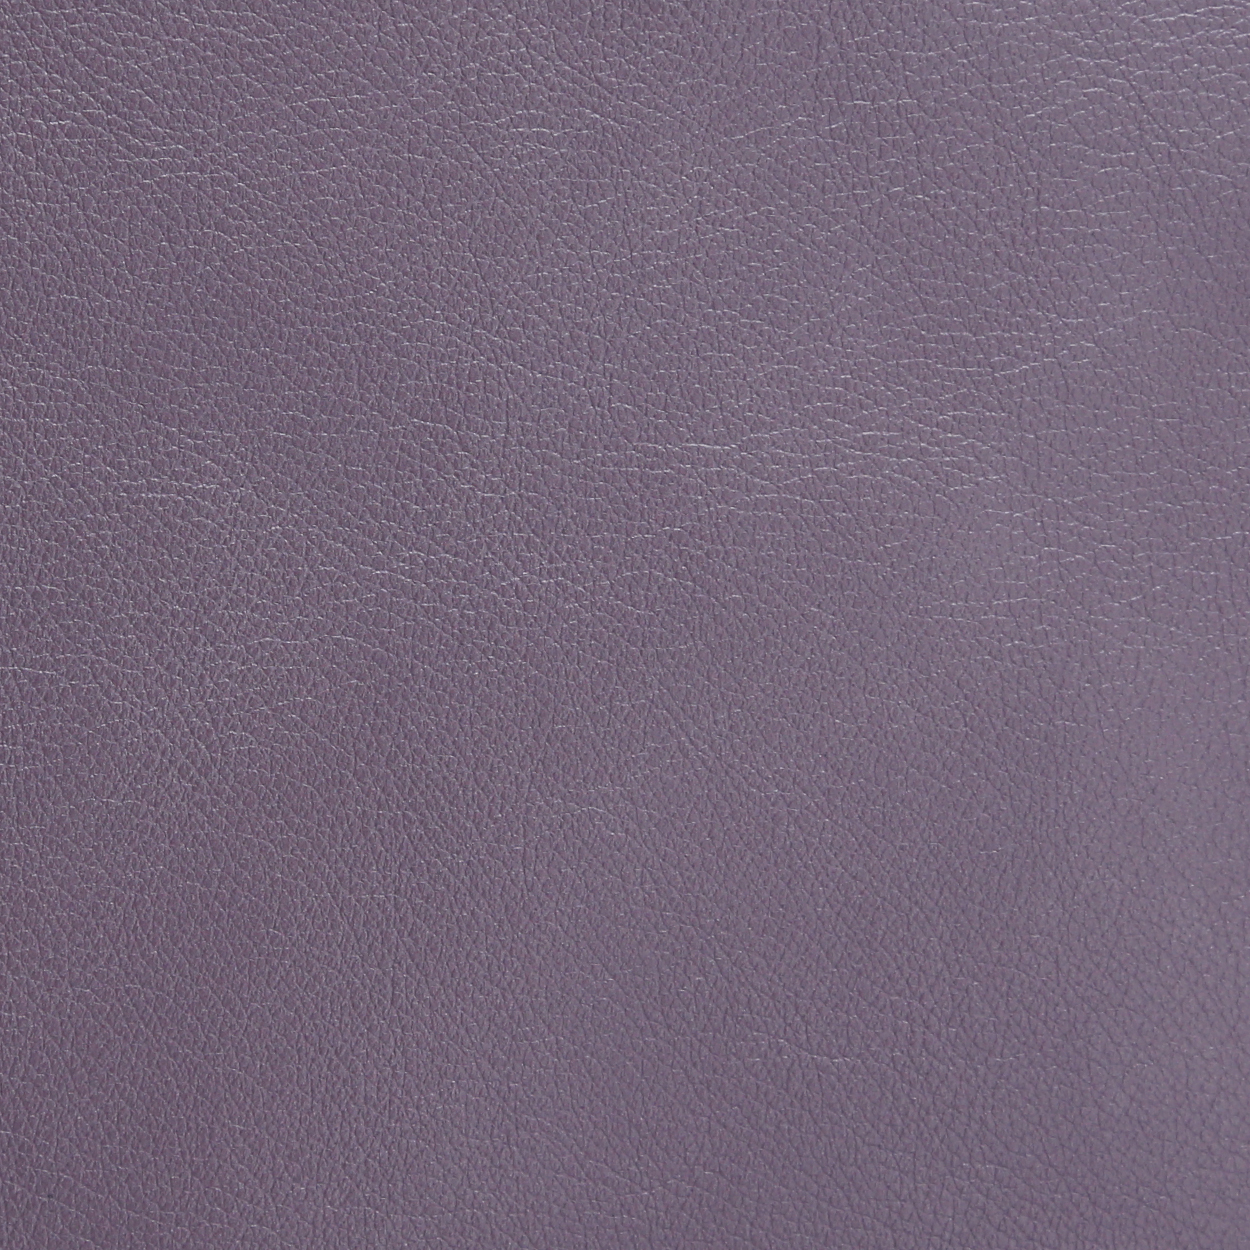 Amethyst - Pearlescent Leather